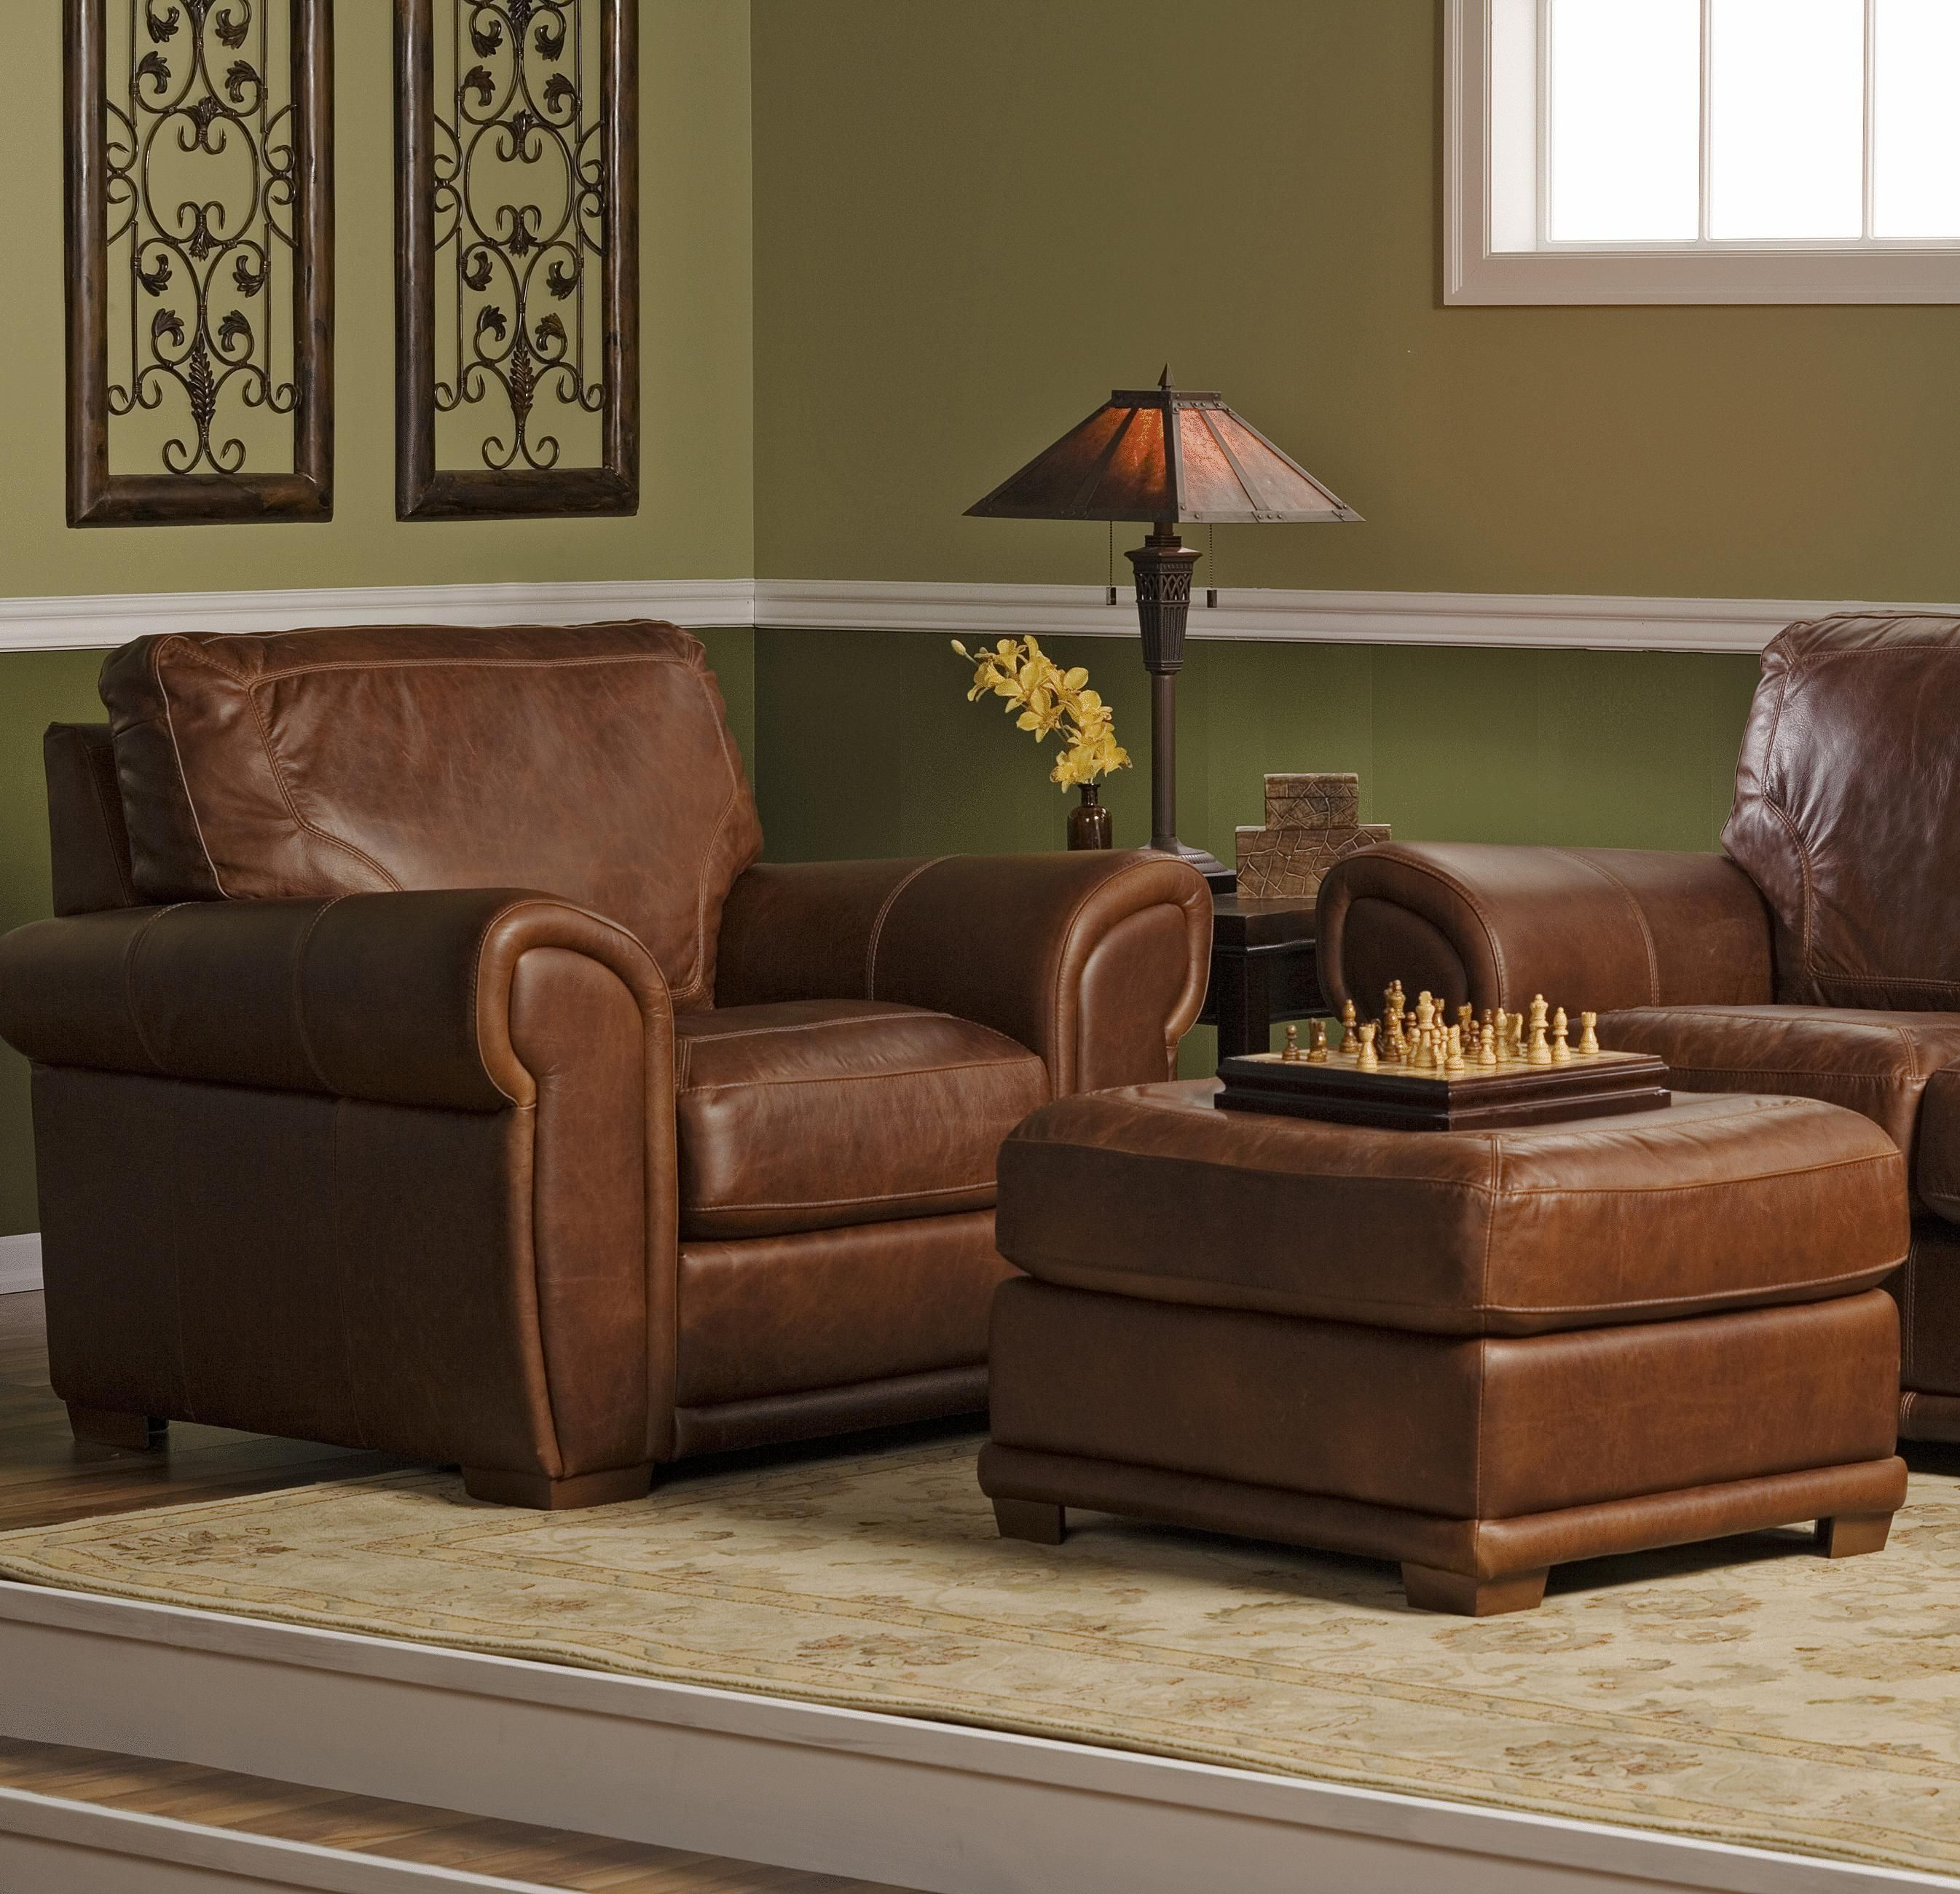 Sofas Hamilton Ontario John Lewis Jackson Sofa Bed Spence Leather Chair And Ottoman Combination Set By